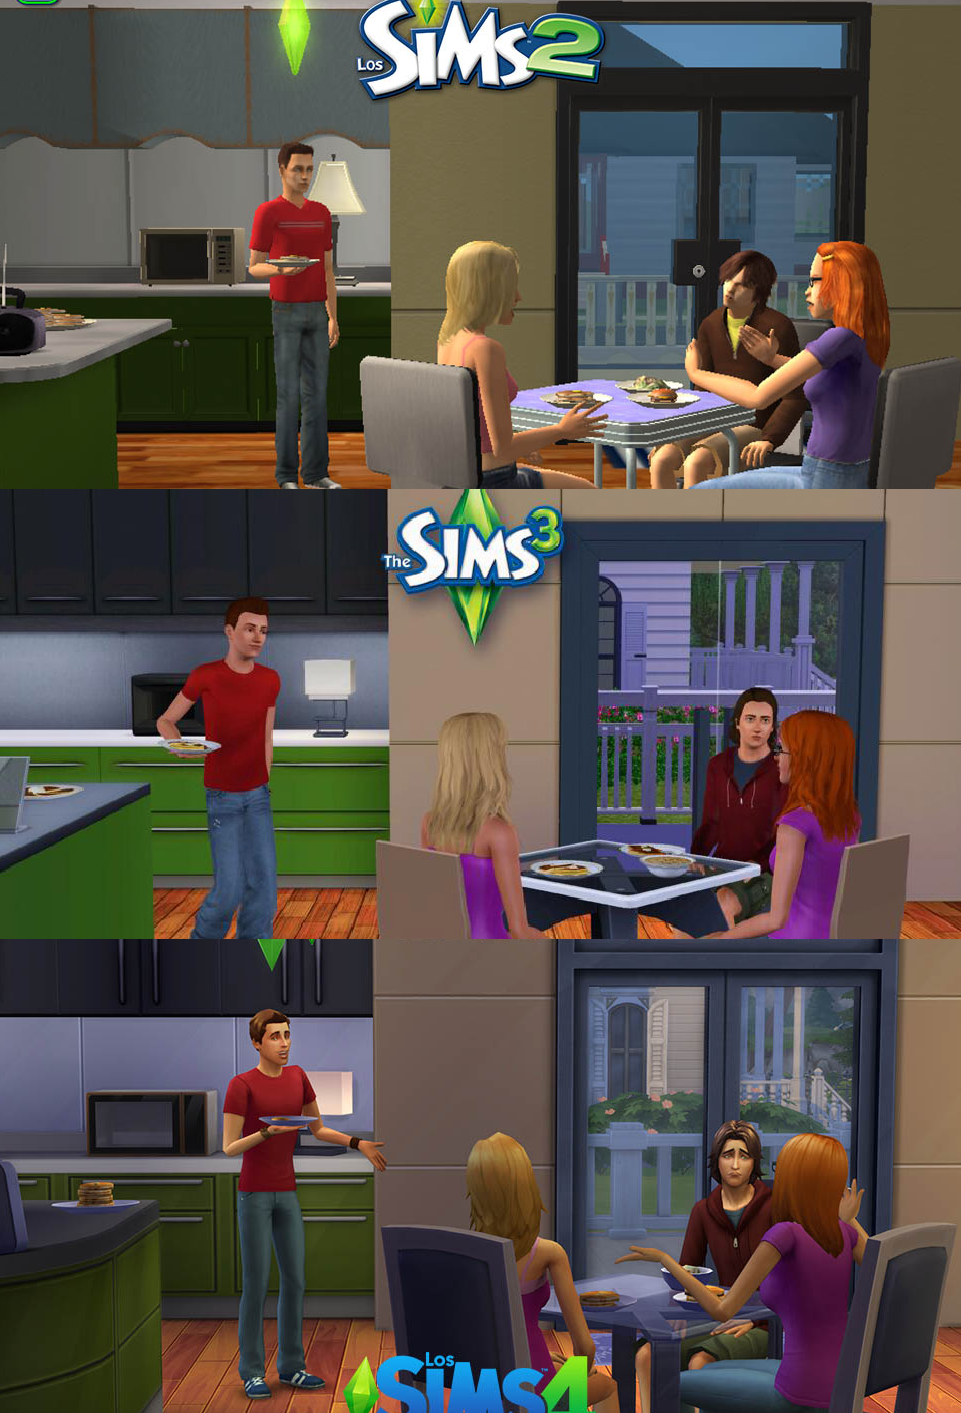 Sims 4 comparison pictures simnation for Online games similar to sims